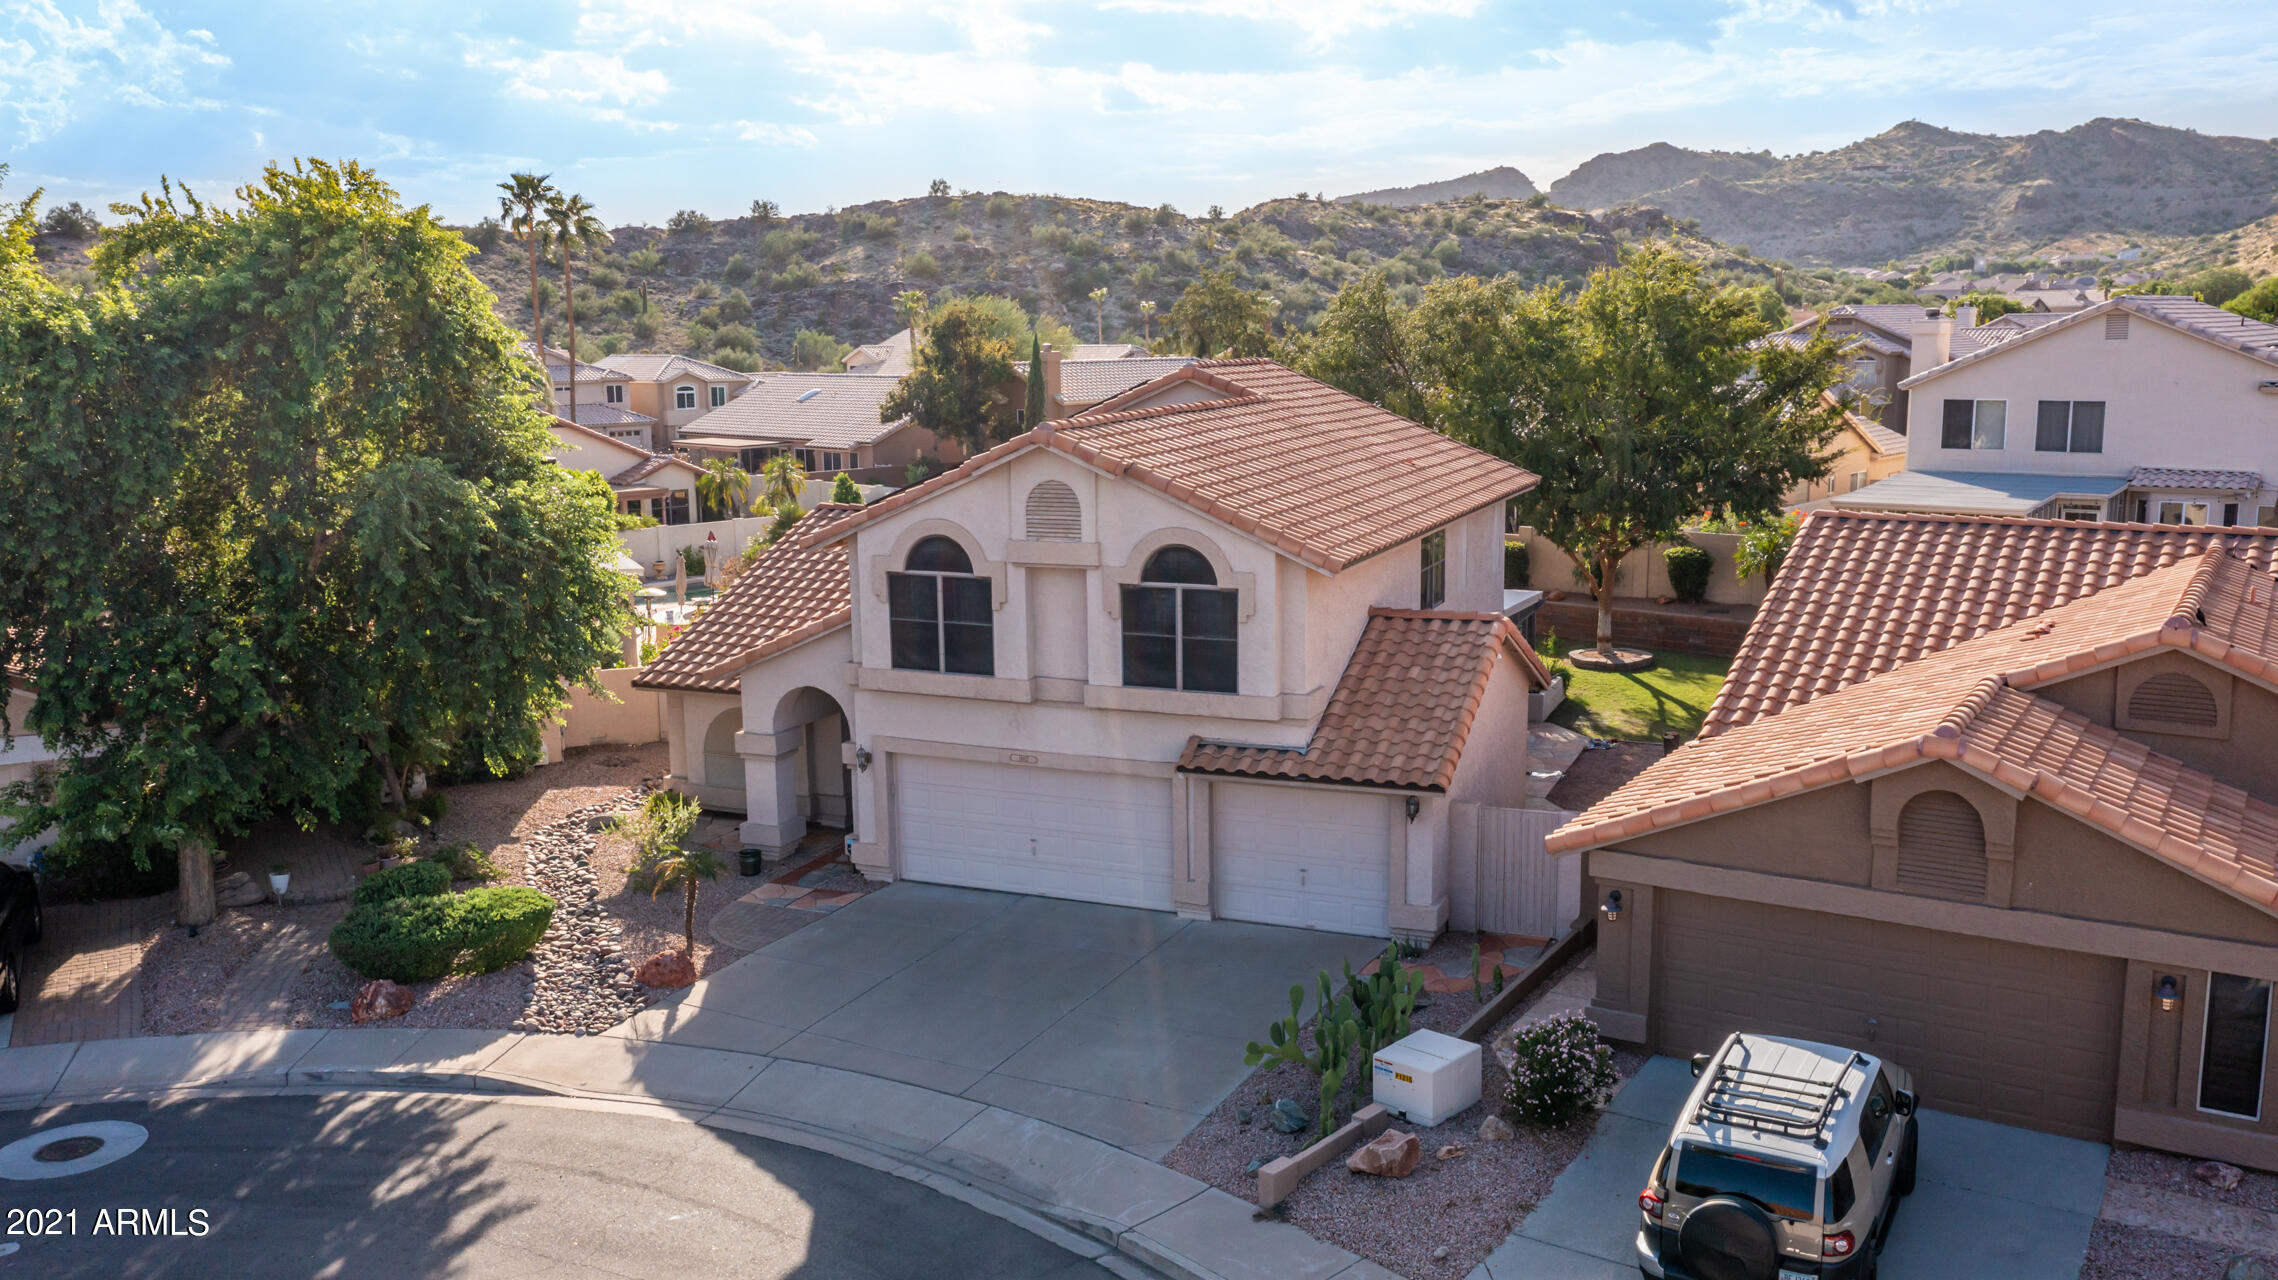 Nestled in Ahwatukee's Mountain Park Ranch, this 2,561 sf, 4BR/2.5BA is situated on an outstanding oversized lot w/ preserve views. Enjoy the huge covered patio, grass yard w/ mature trees, fire pit, & large pool, offering year round enjoyment outside! Inside, you'll find a spacious & open floorplan w/ flexible space options downstairs, & 4 large bedrooms upstairs. Master is well-appointed w/ large shower, freestanding claw foot tub, double vanities & walk-in closet. Secondary beds are well-sized, & share the remodeled bath done this year. 3-car garage w/ fridge, cabinets & shelving. Mountain Park Ranch offers multiple pools, children's play areas, tennis, pickle ball, & half-basketball courts, with hiking/bike trails & parks nearby. Minutes to 202/I-10 freeways, shopping & much more!